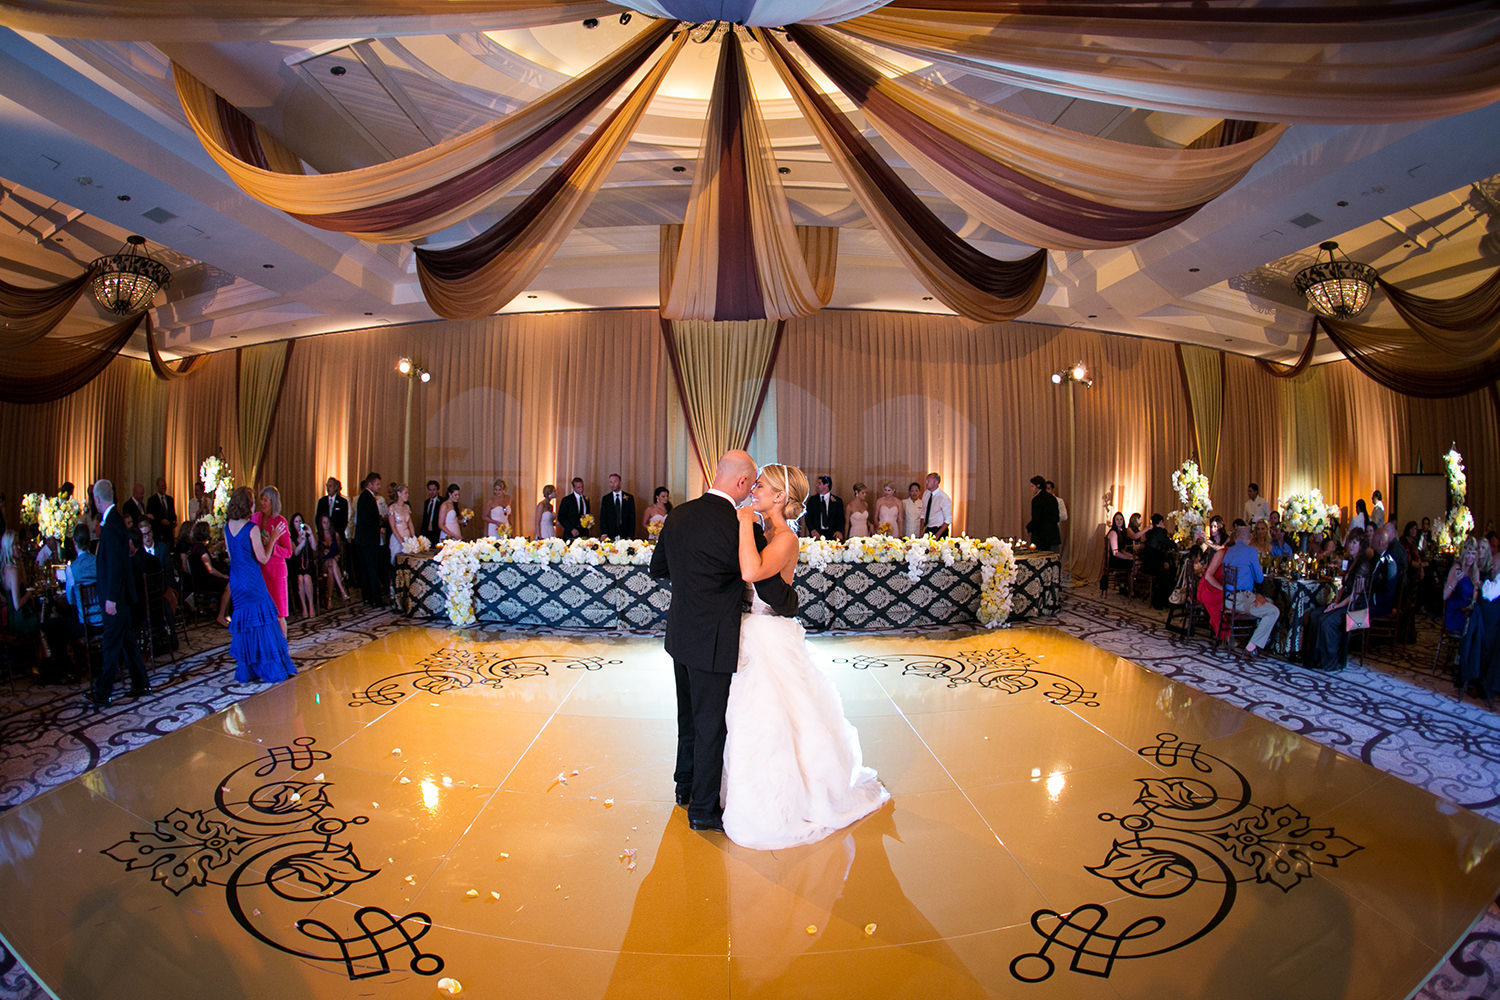 Spotlight on the first dance in the incredible St. Regis Monarch Beach